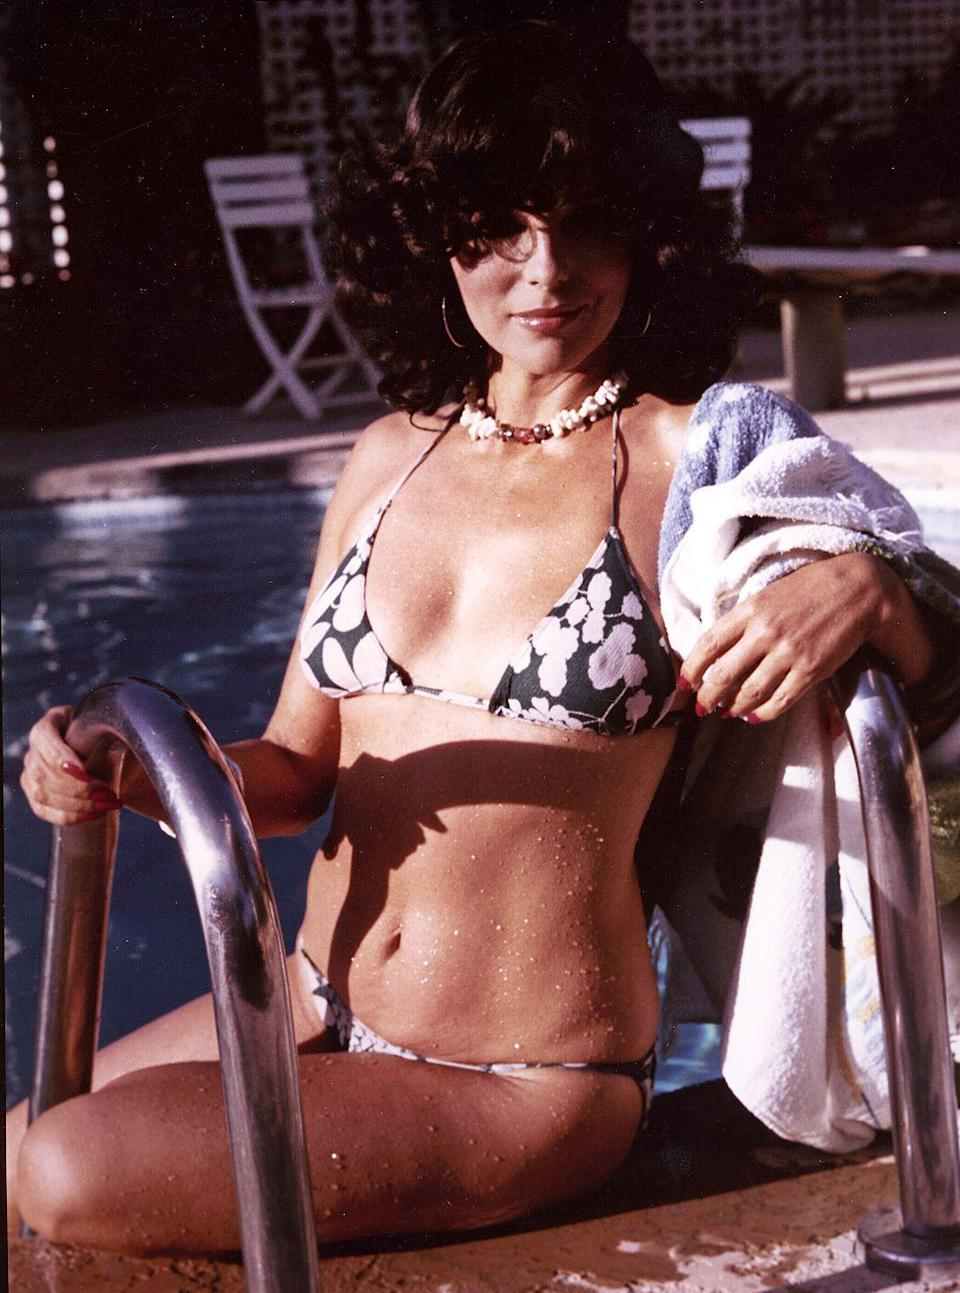 <p>Actress Joan Collins wears a floral bikini as she enjoys the pool in the backyard of her Beverly Hills home in 1976. </p>